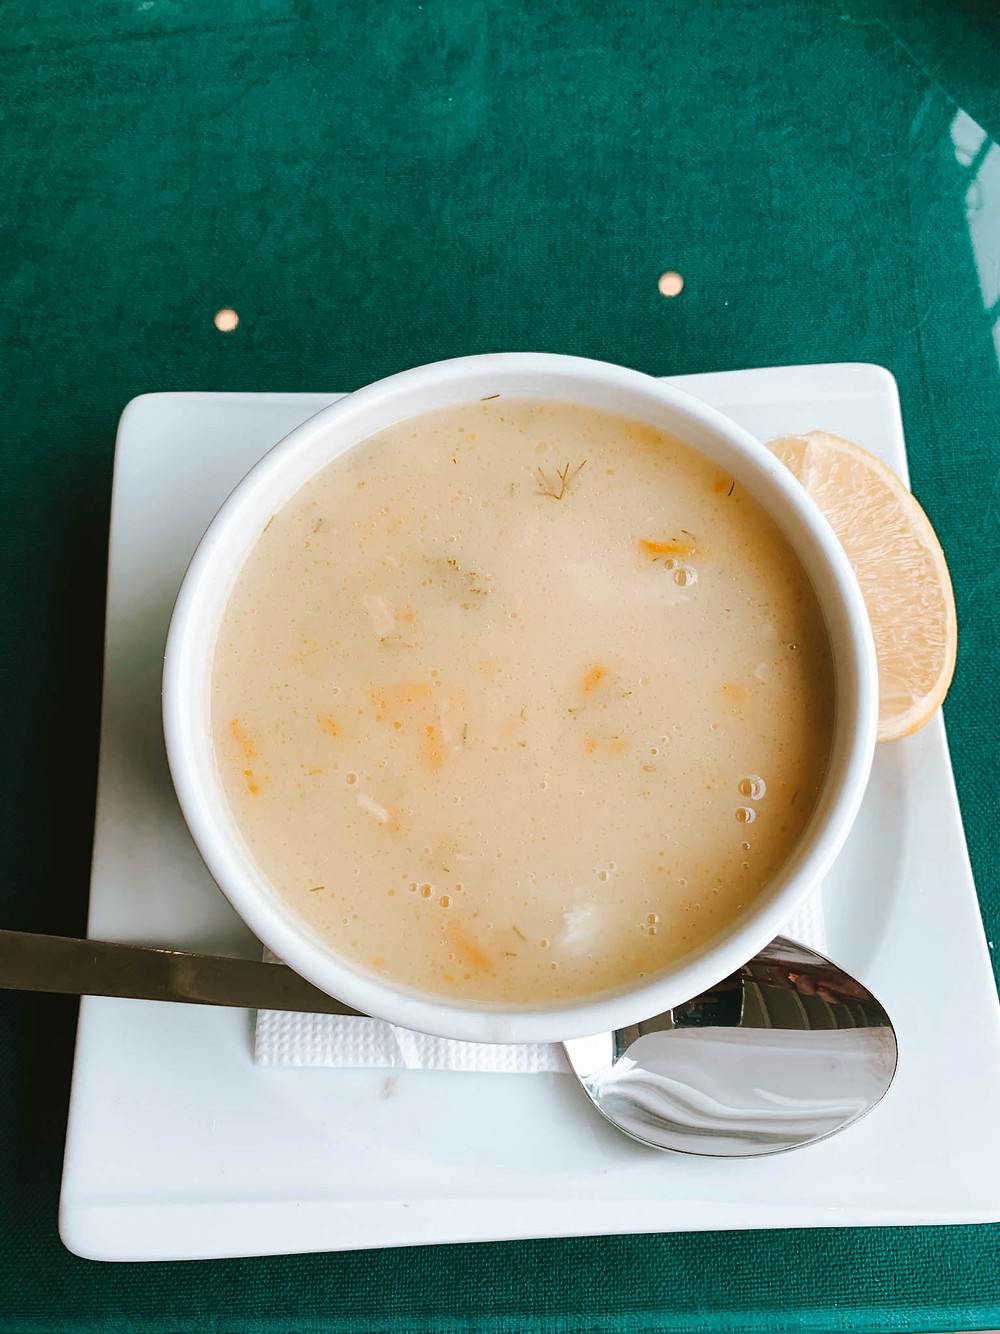 Fish soup - absolutely worth the visit!